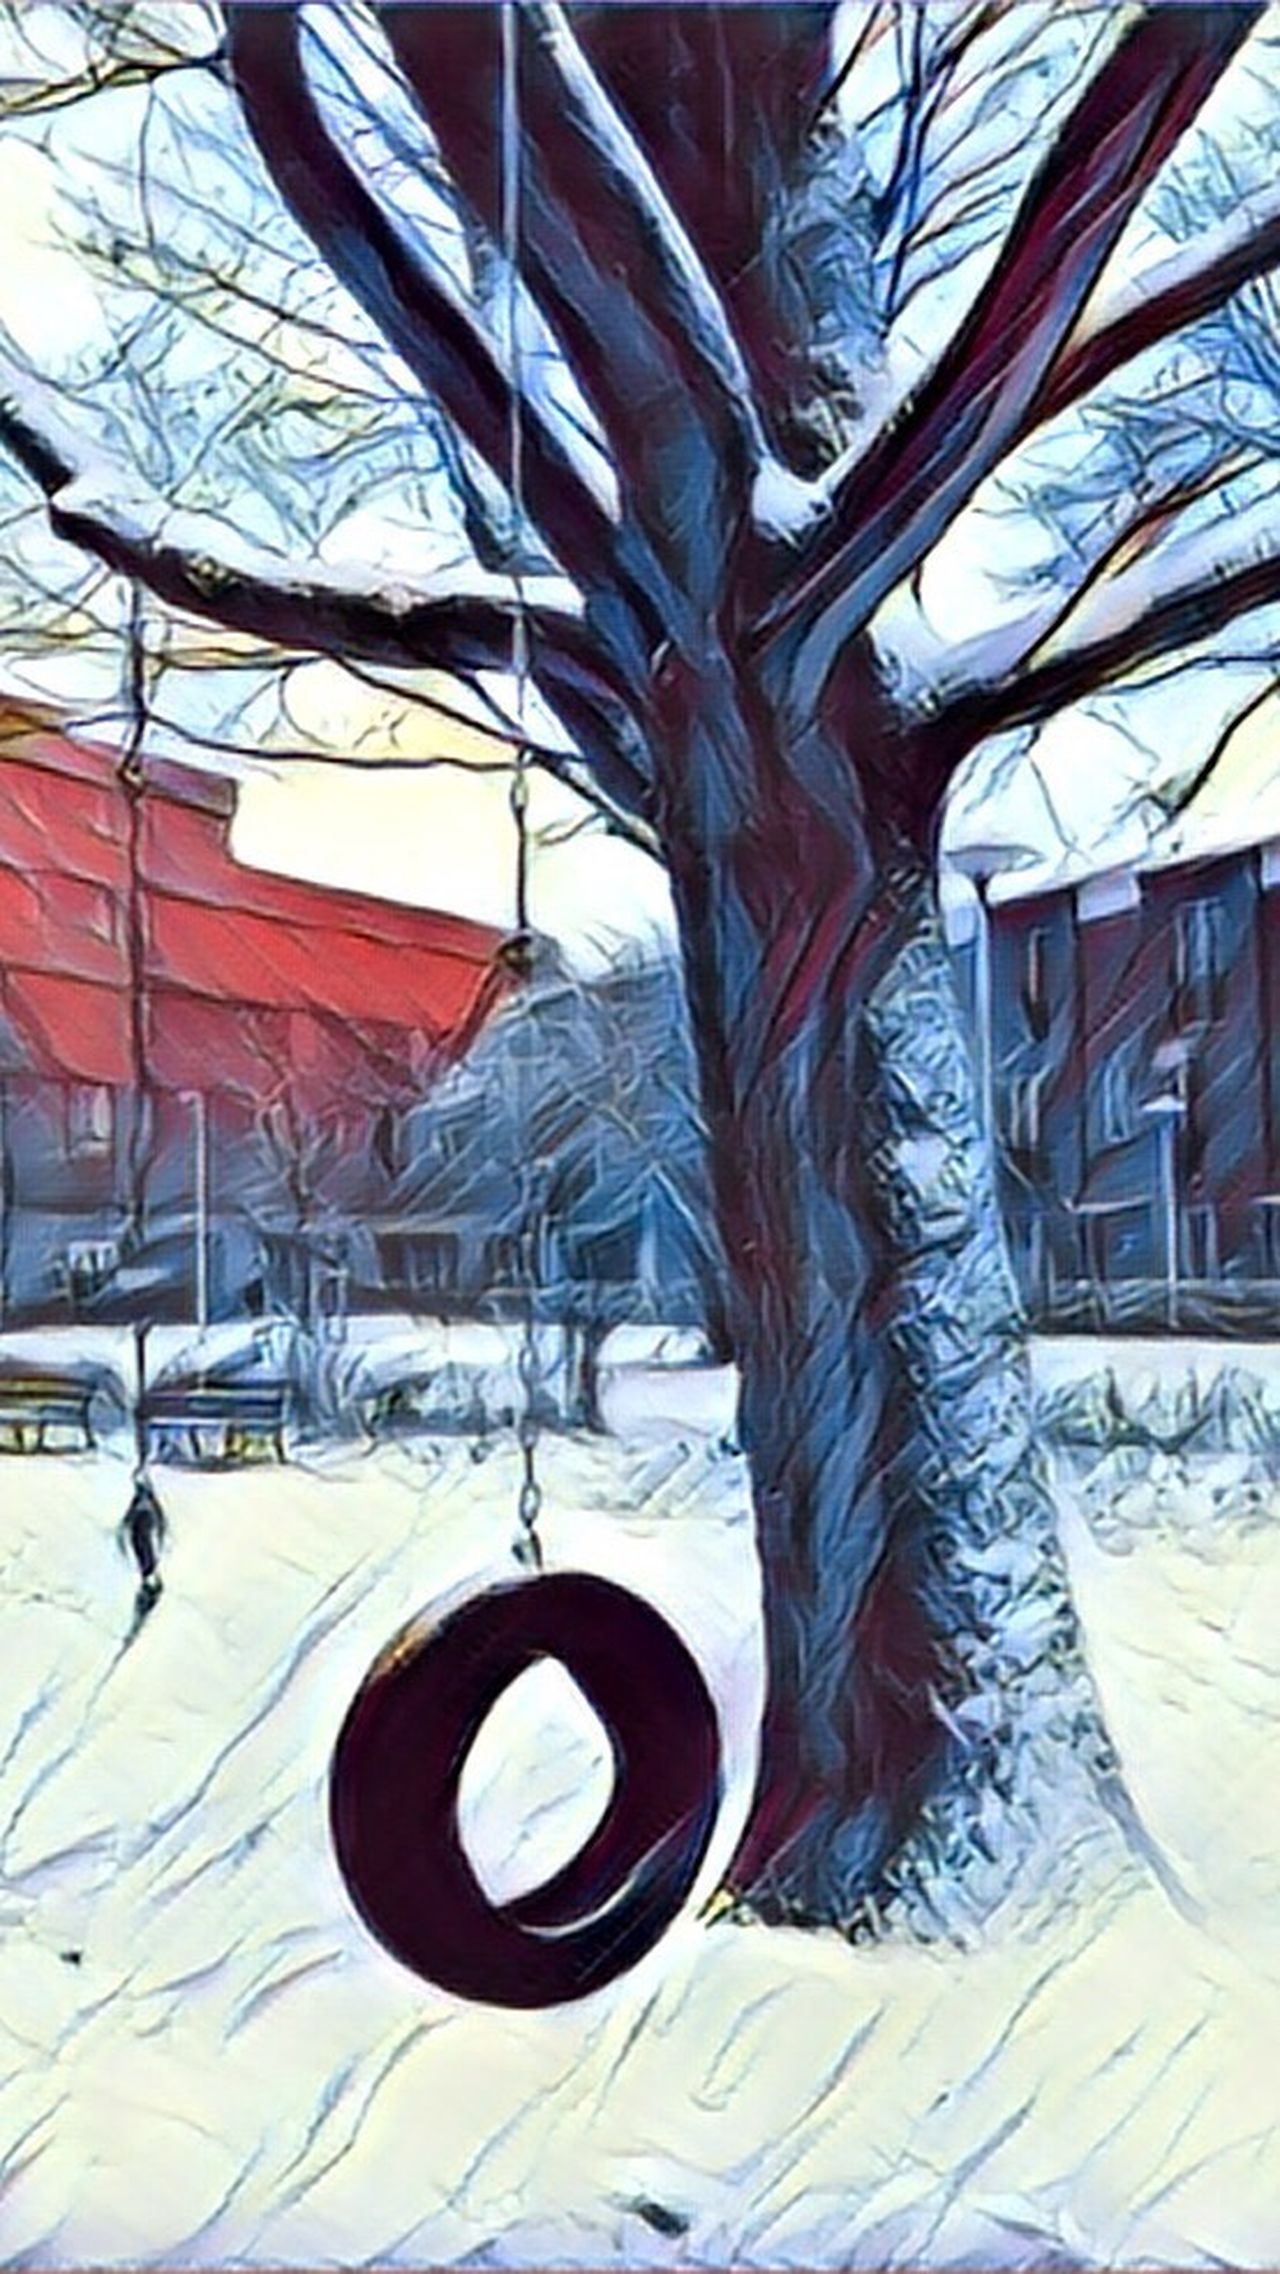 Tree Winter Built Structure Architecture No People Day Snow Cold Temperature Outdoors Nature Nature Photography Tree Painting Art Eyeemphotography EyeEmBestPics Eye4photography  Taking Photos EyeEm Best Edits